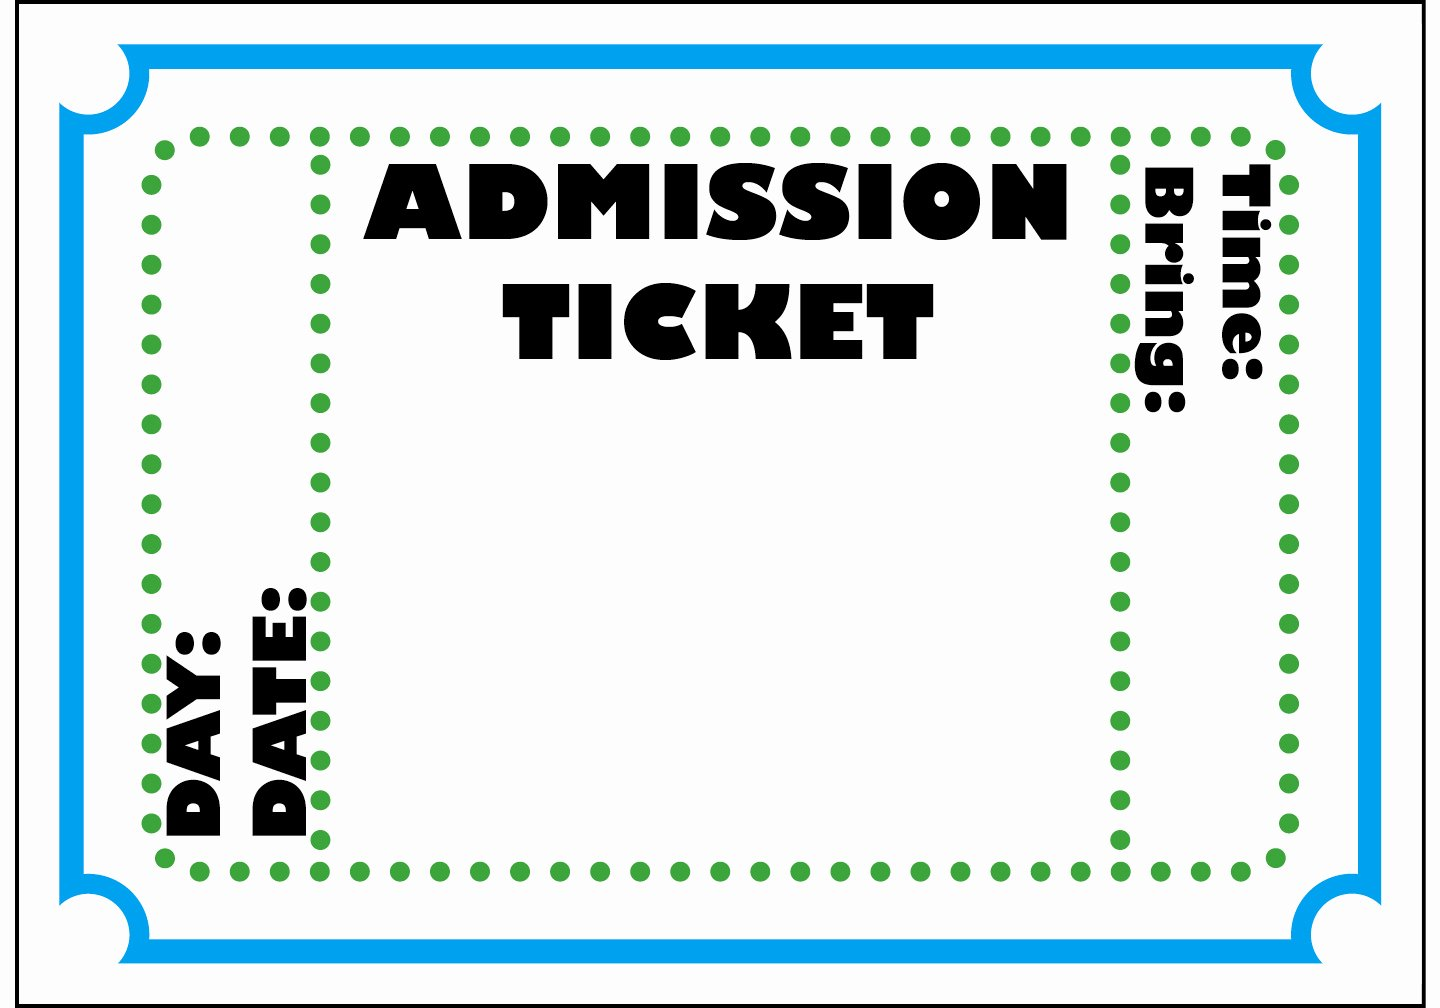 Print Tickets Free Template Fresh Free Printable Admit E Ticket Template Clipart Best